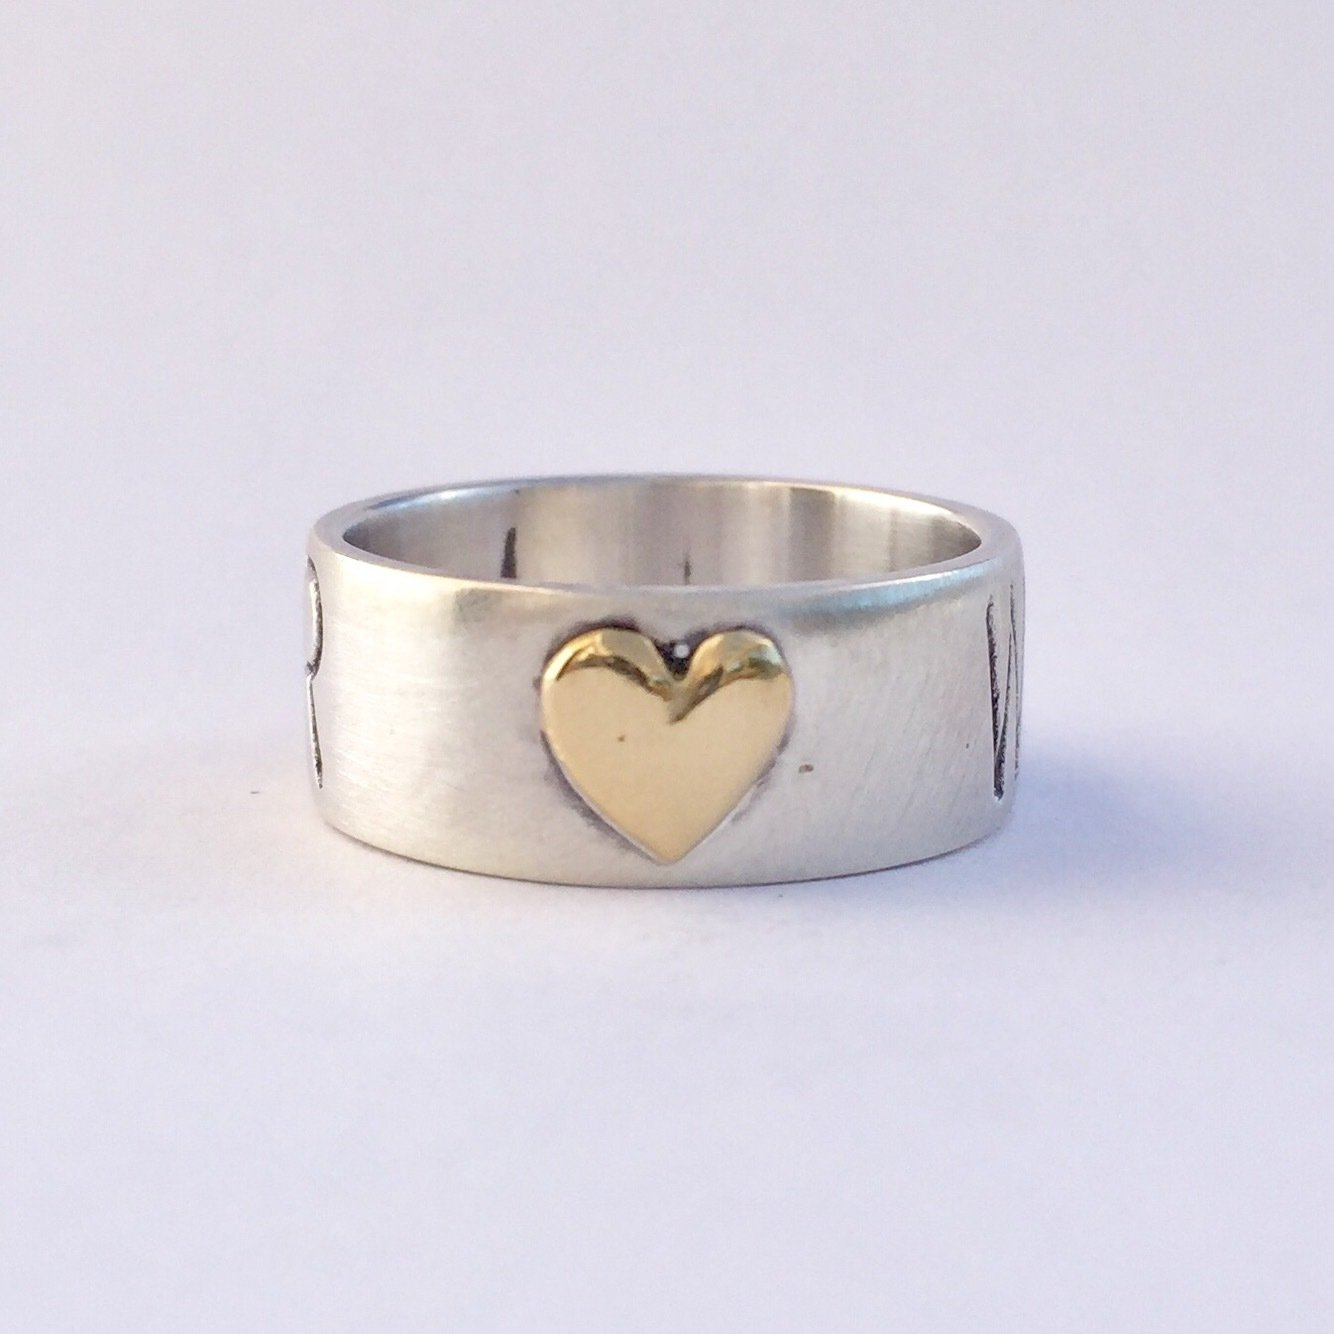 Warrior Ring Sterling Silver with 18k heart of gold 8mm (wide) band